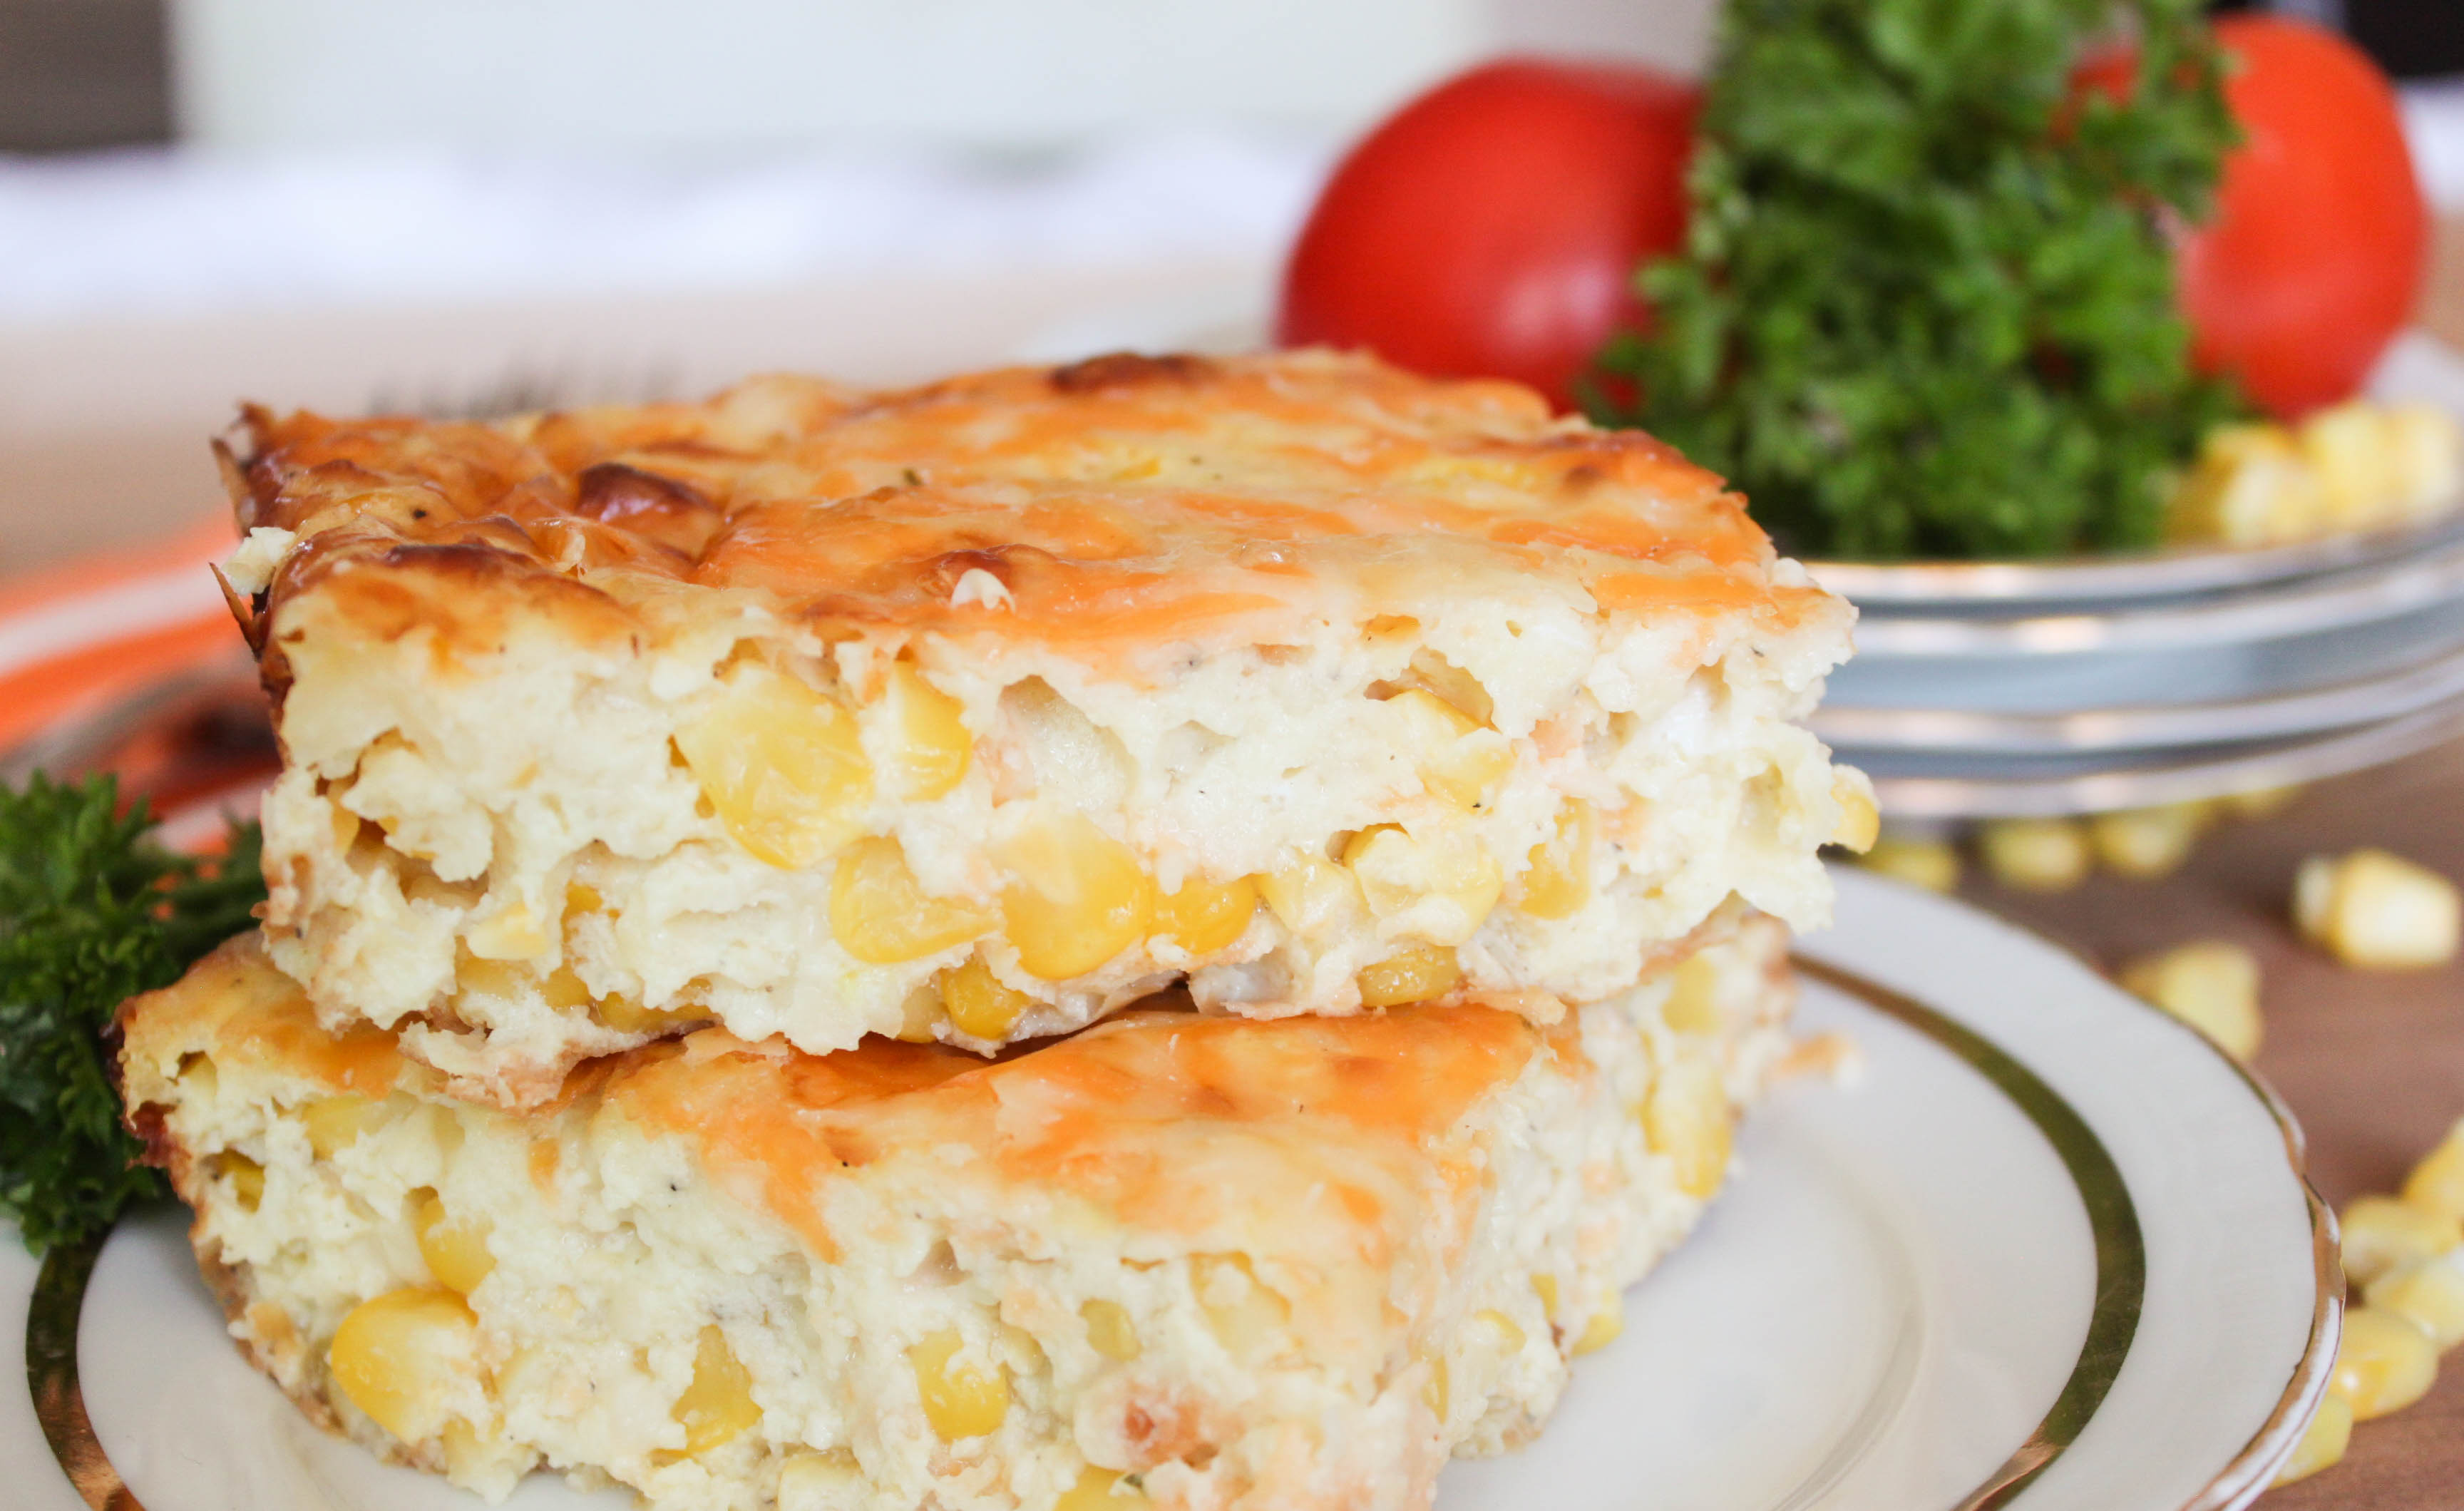 Crustless Corn Quiche - easy and delicious recipe. Great Vegetarian meal or a side dish.